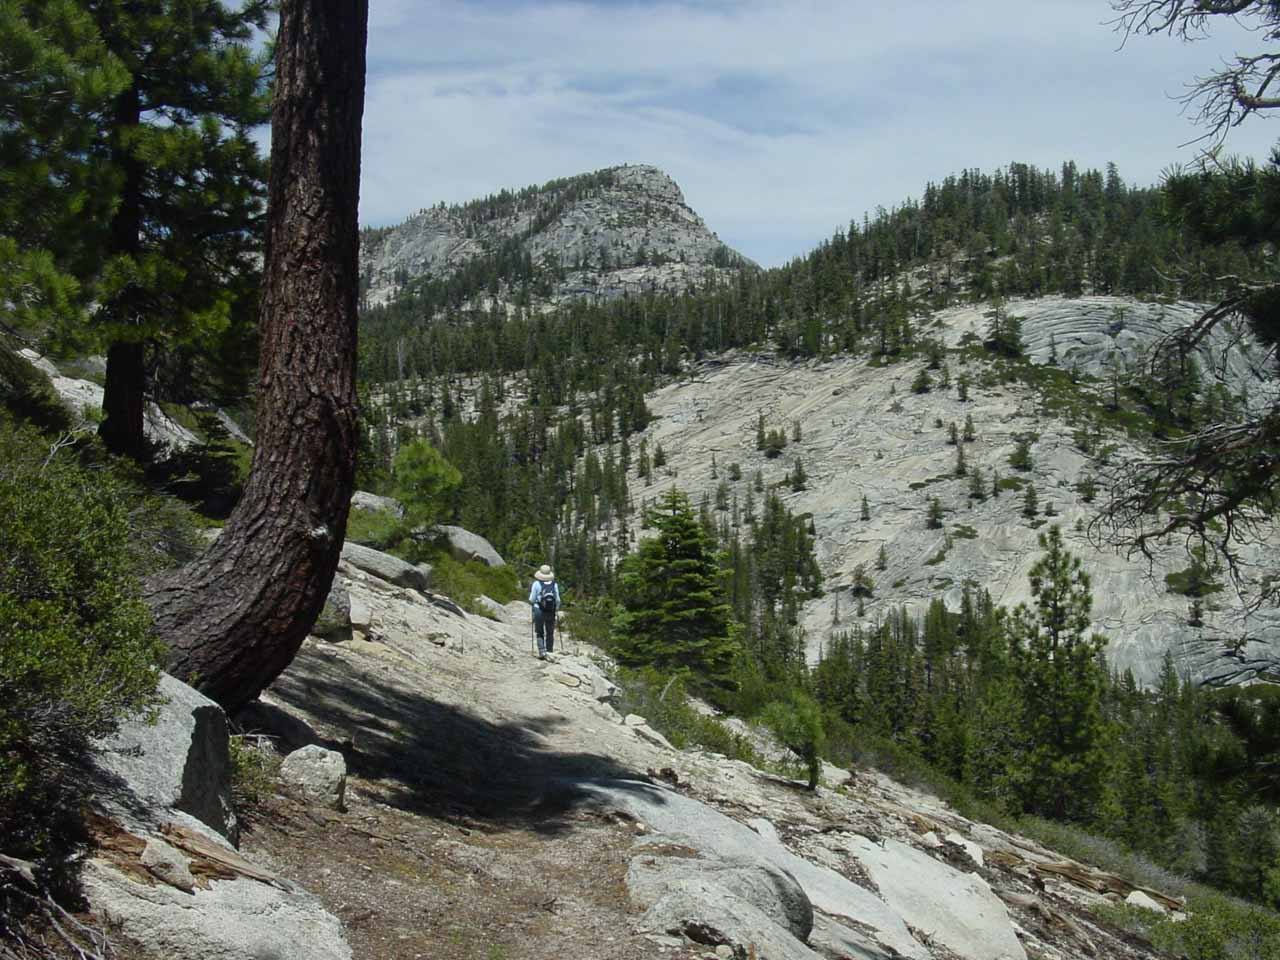 Mom headed back to the trailhead amidst the granite wilderness